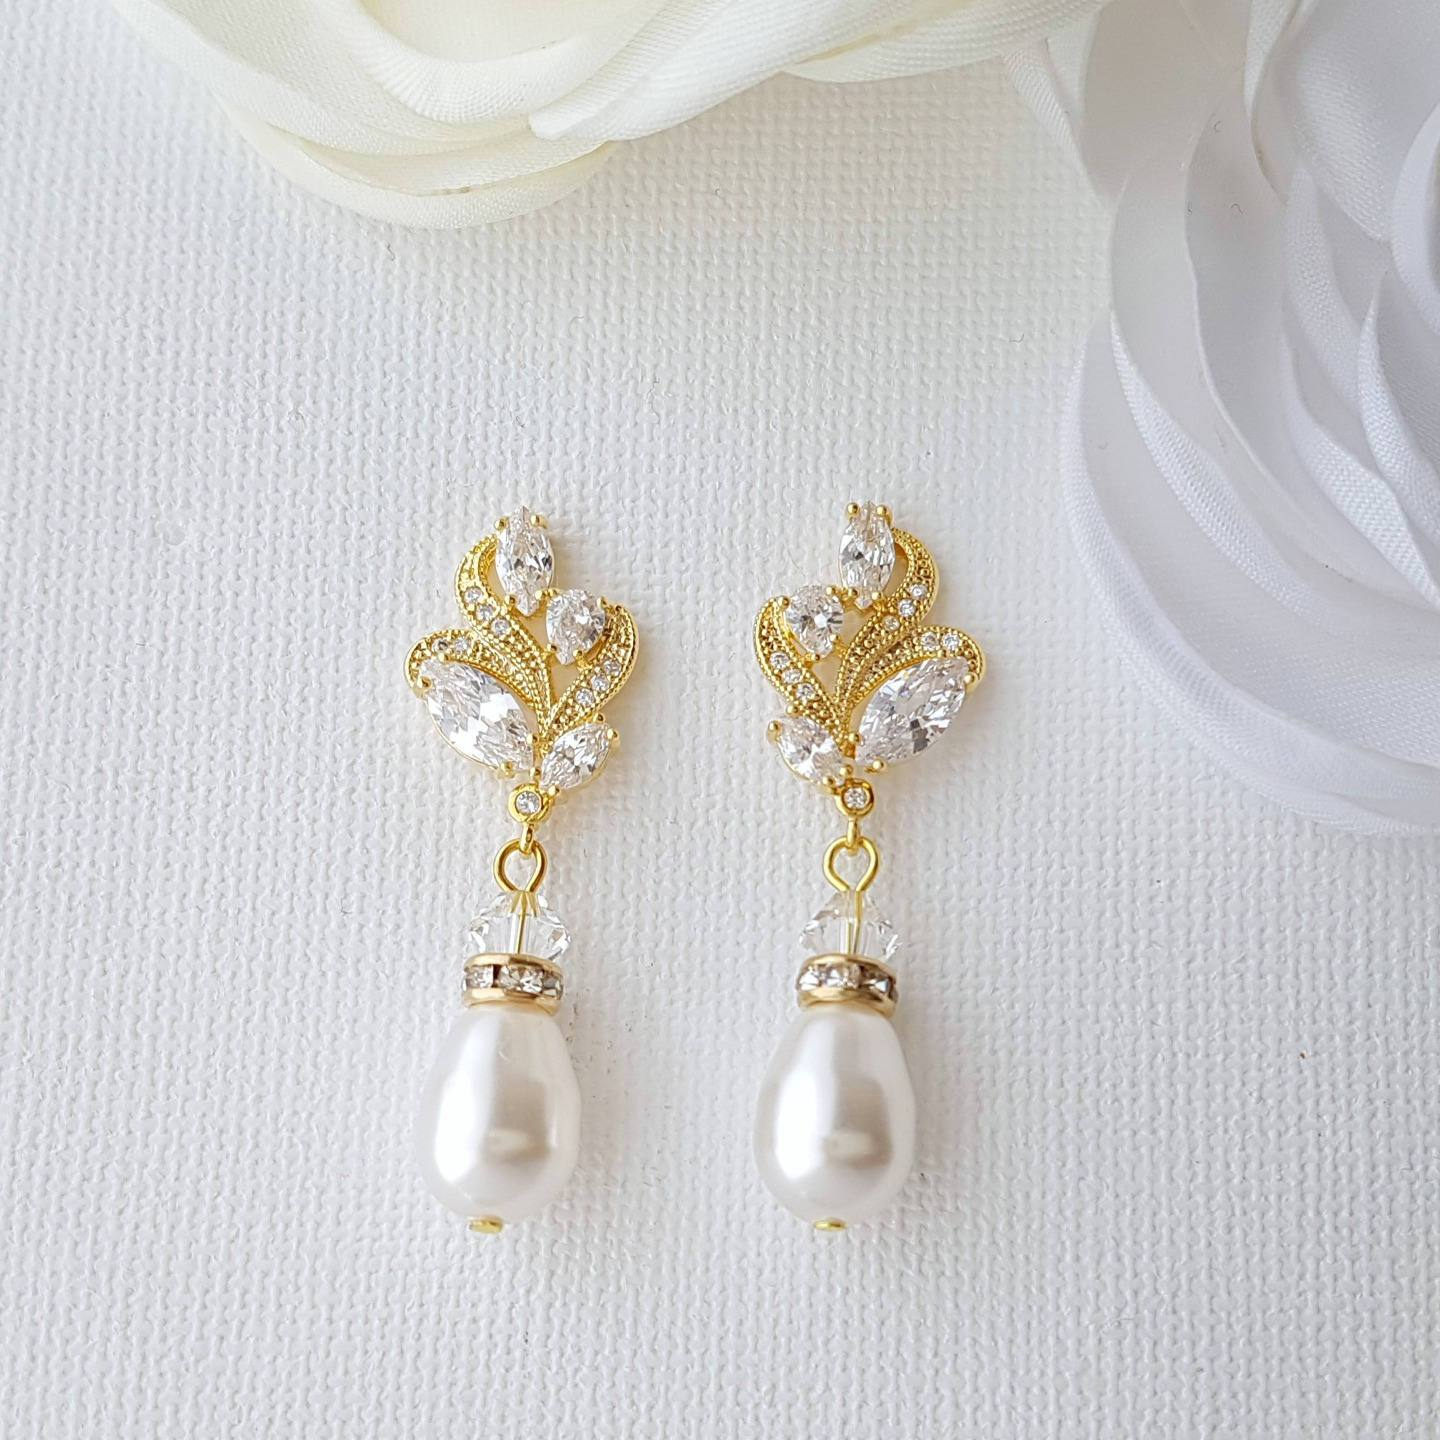 Gold Bridal Earrings, Gold And Pearl Earrings, Crystal Wedding Earrings, Swarovski Pearls, Gold Bridal Jewelry, Wedding Jewelry , Wavy